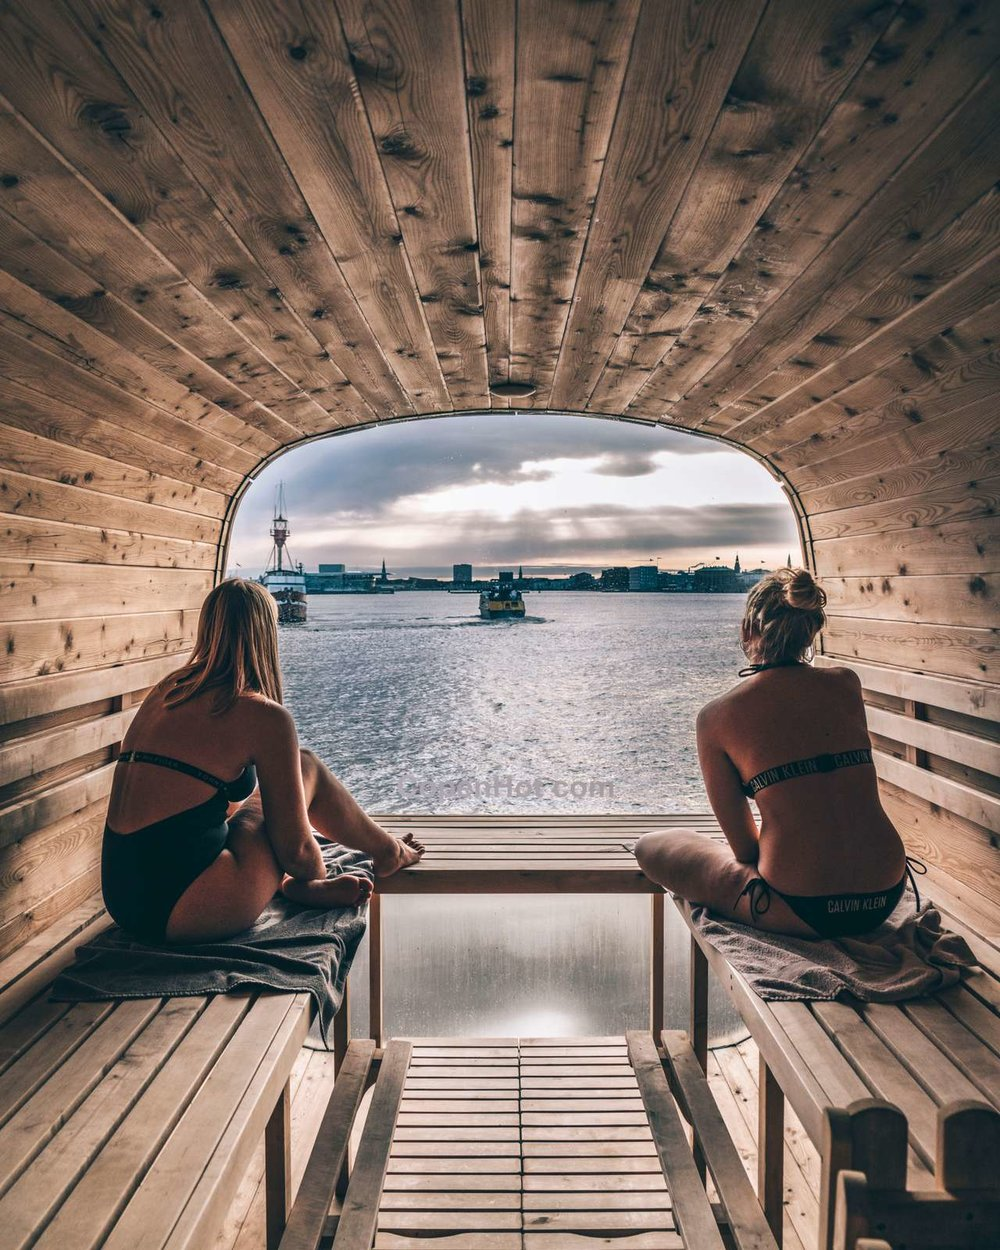 Panoramic Sauna - Enjoy the heat with friends or family in our fire heated panoramic sauna with the amazing harbour and castle view - and as a treat, a fresh saltwater shower is available next to the sauna,  The sauna seats 12 people!The best view from a spa in copenhagen ! So enjoy and relax in the heated clean sea water 40℃ / 104℉ at the Refshaleø with a TOP view! The stationary spa seats 6 persons and included in the price is a bottle of Cava !